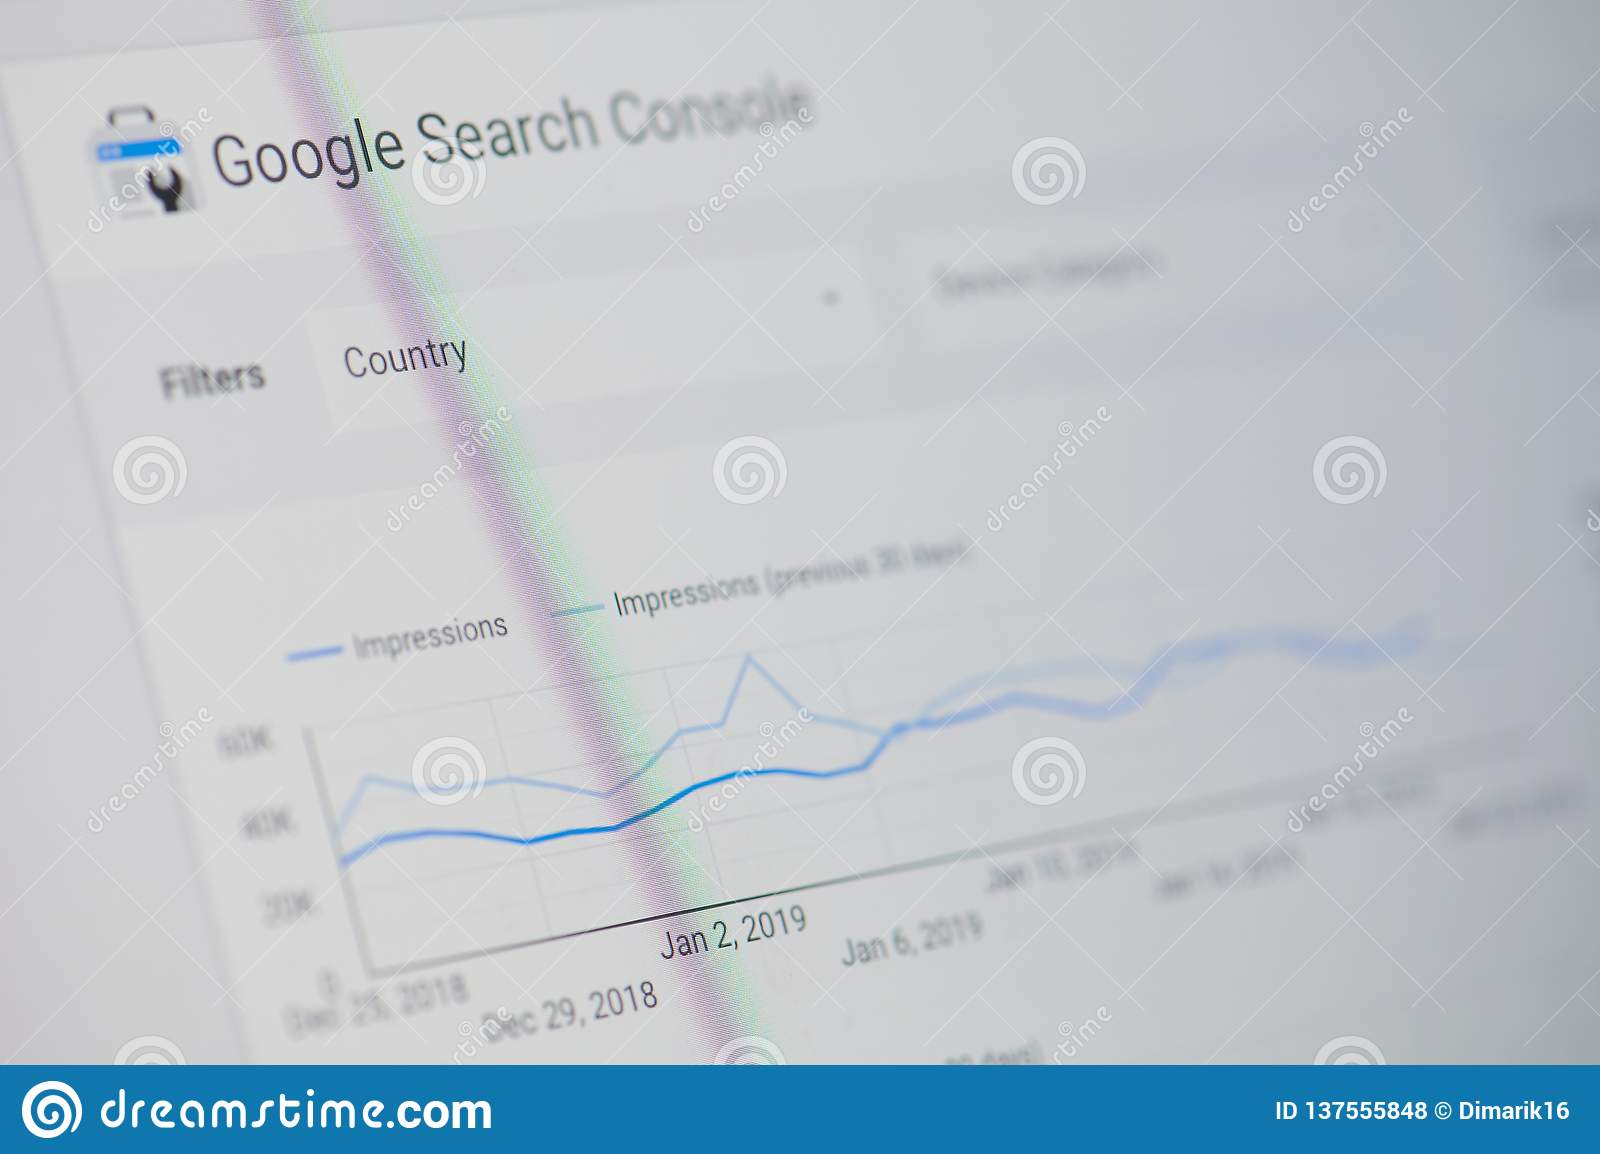 Google search console editorial stock photo  Image of graph